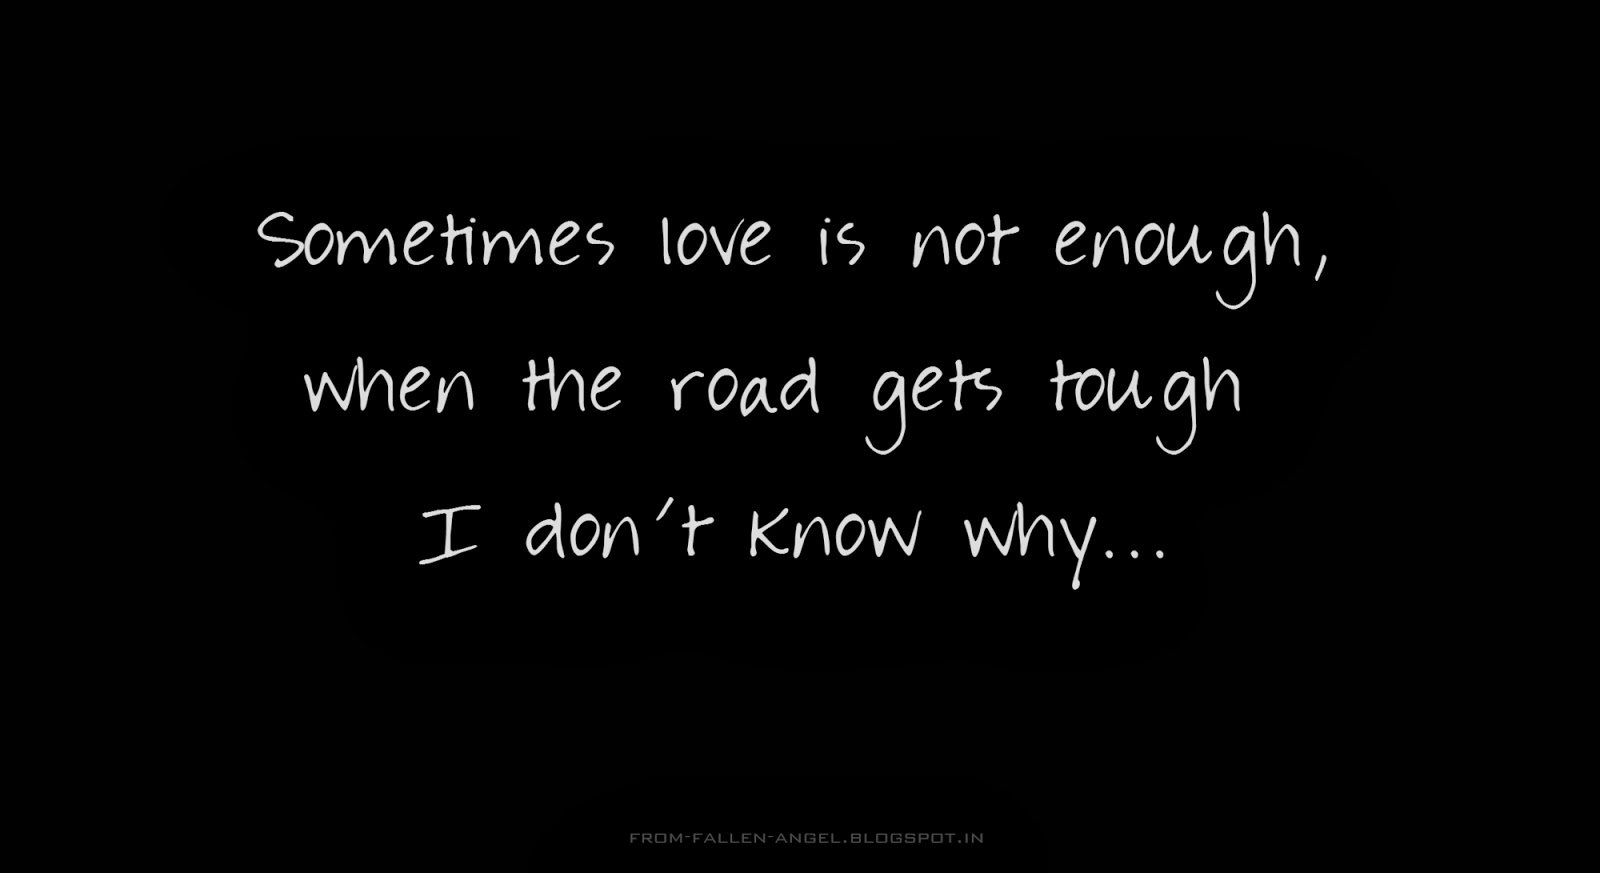 Sometimes love is not enough, when the road gets tough I don't know why...